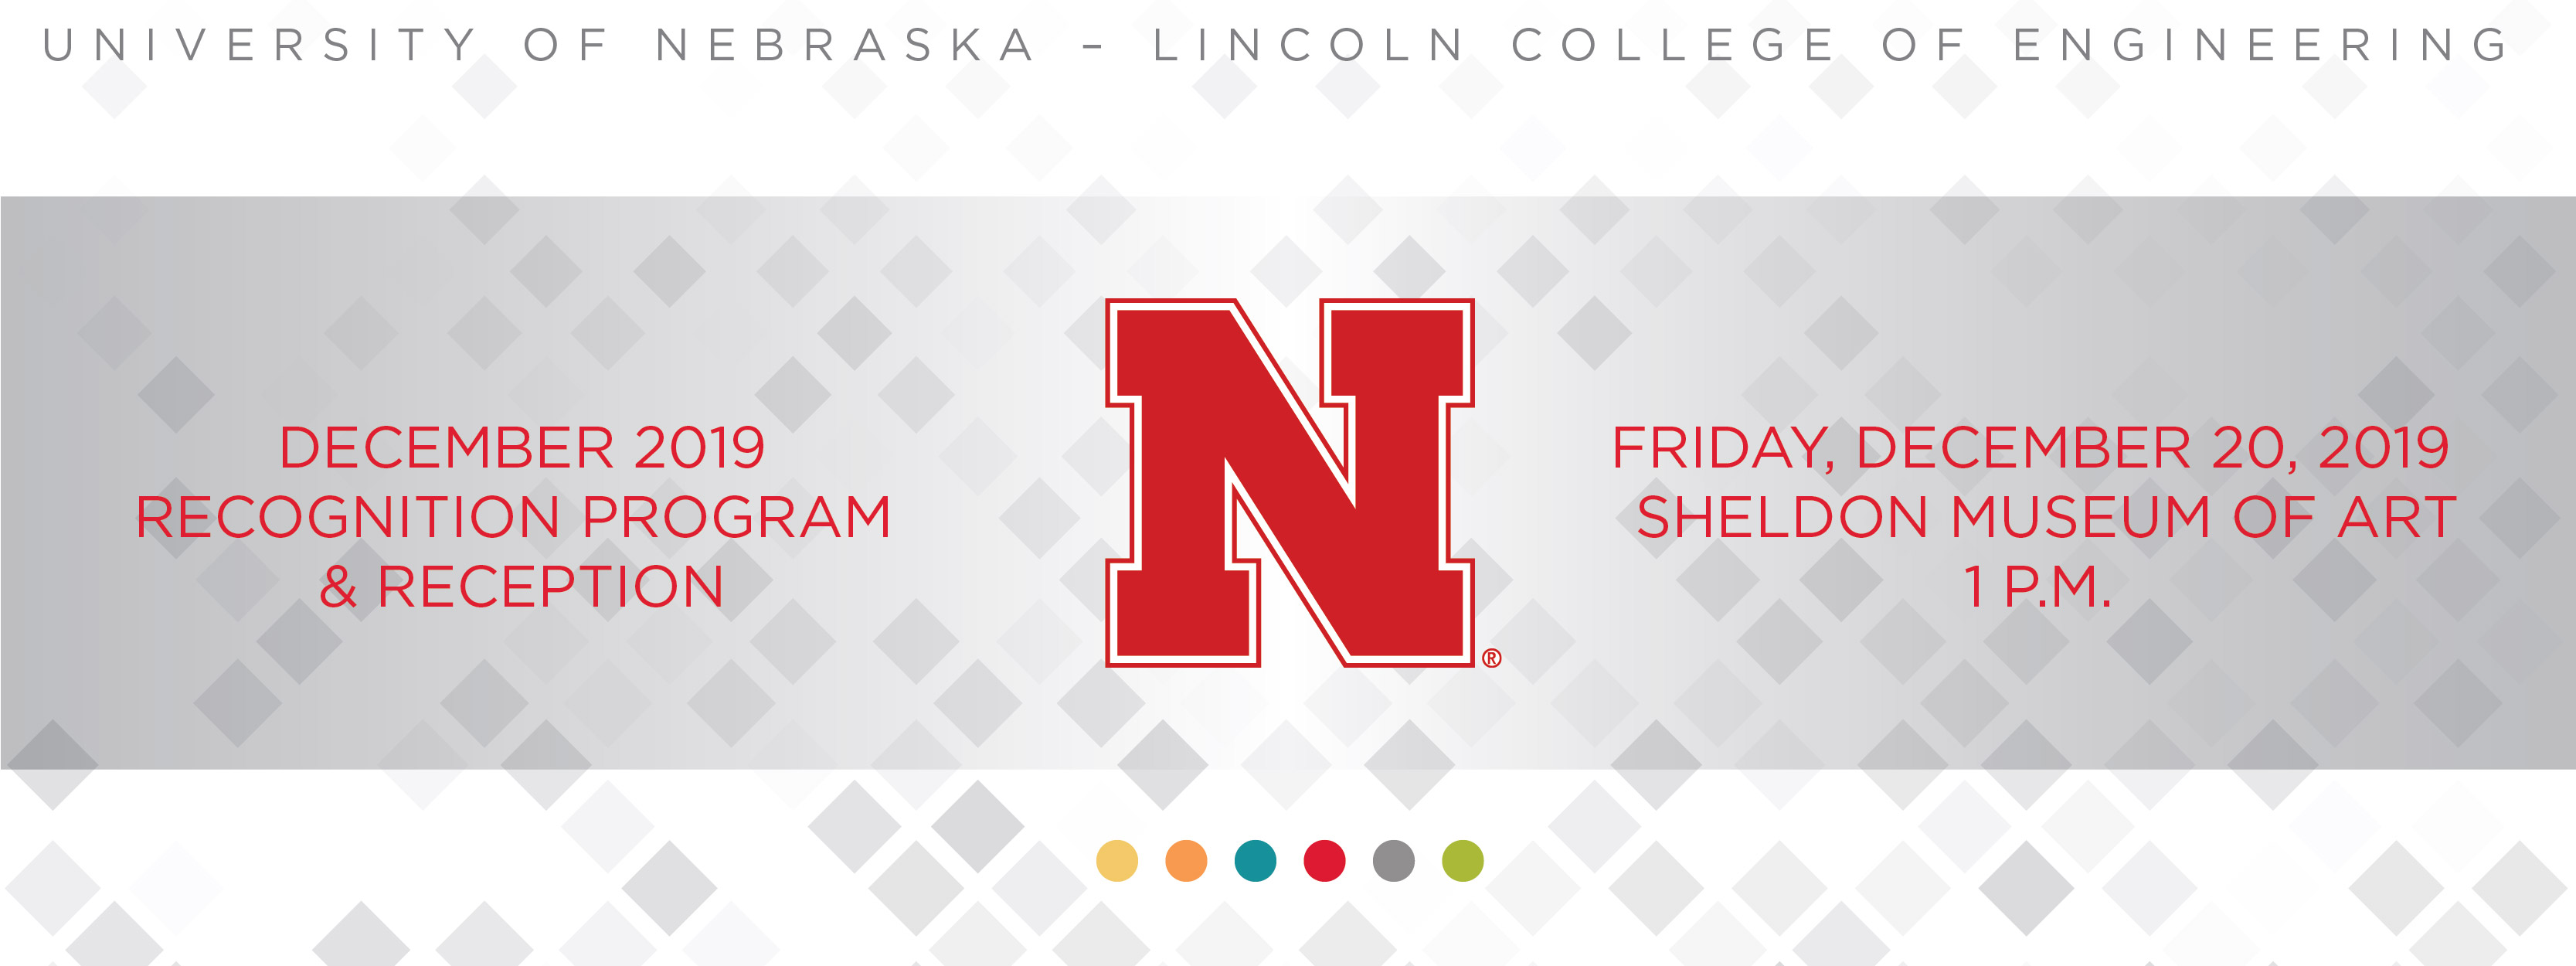 University of Nebraska-Lincoln, College of Engineering May 20, 2019 Recognition Program and Reception. Sheldon Museum of Art. 1 p.m.